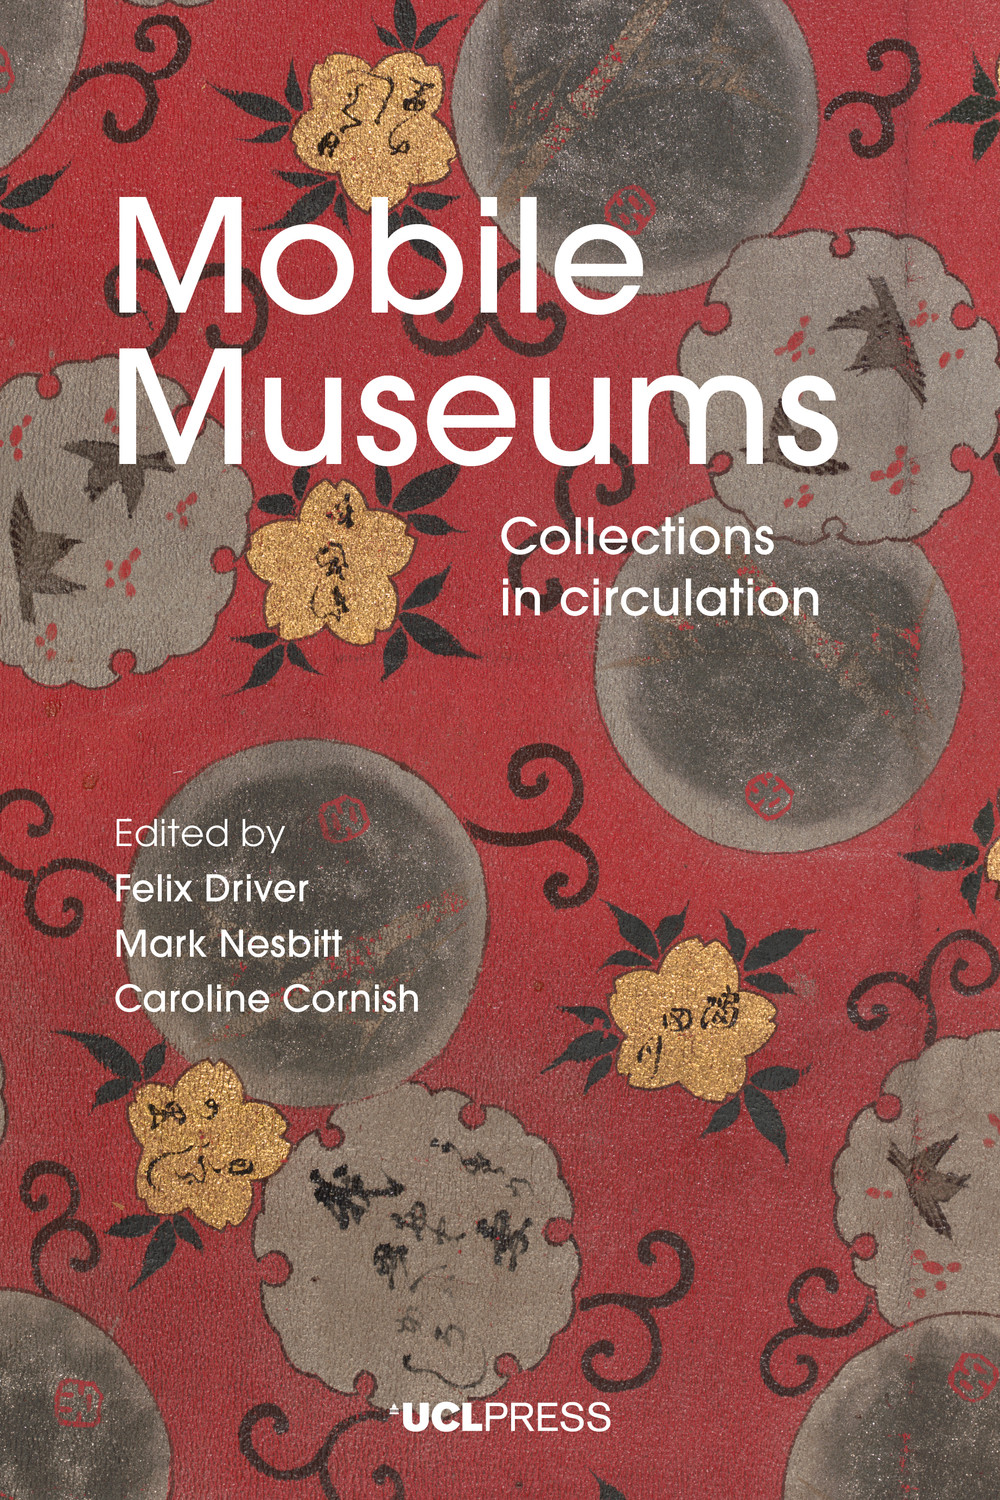 Mobile Museums